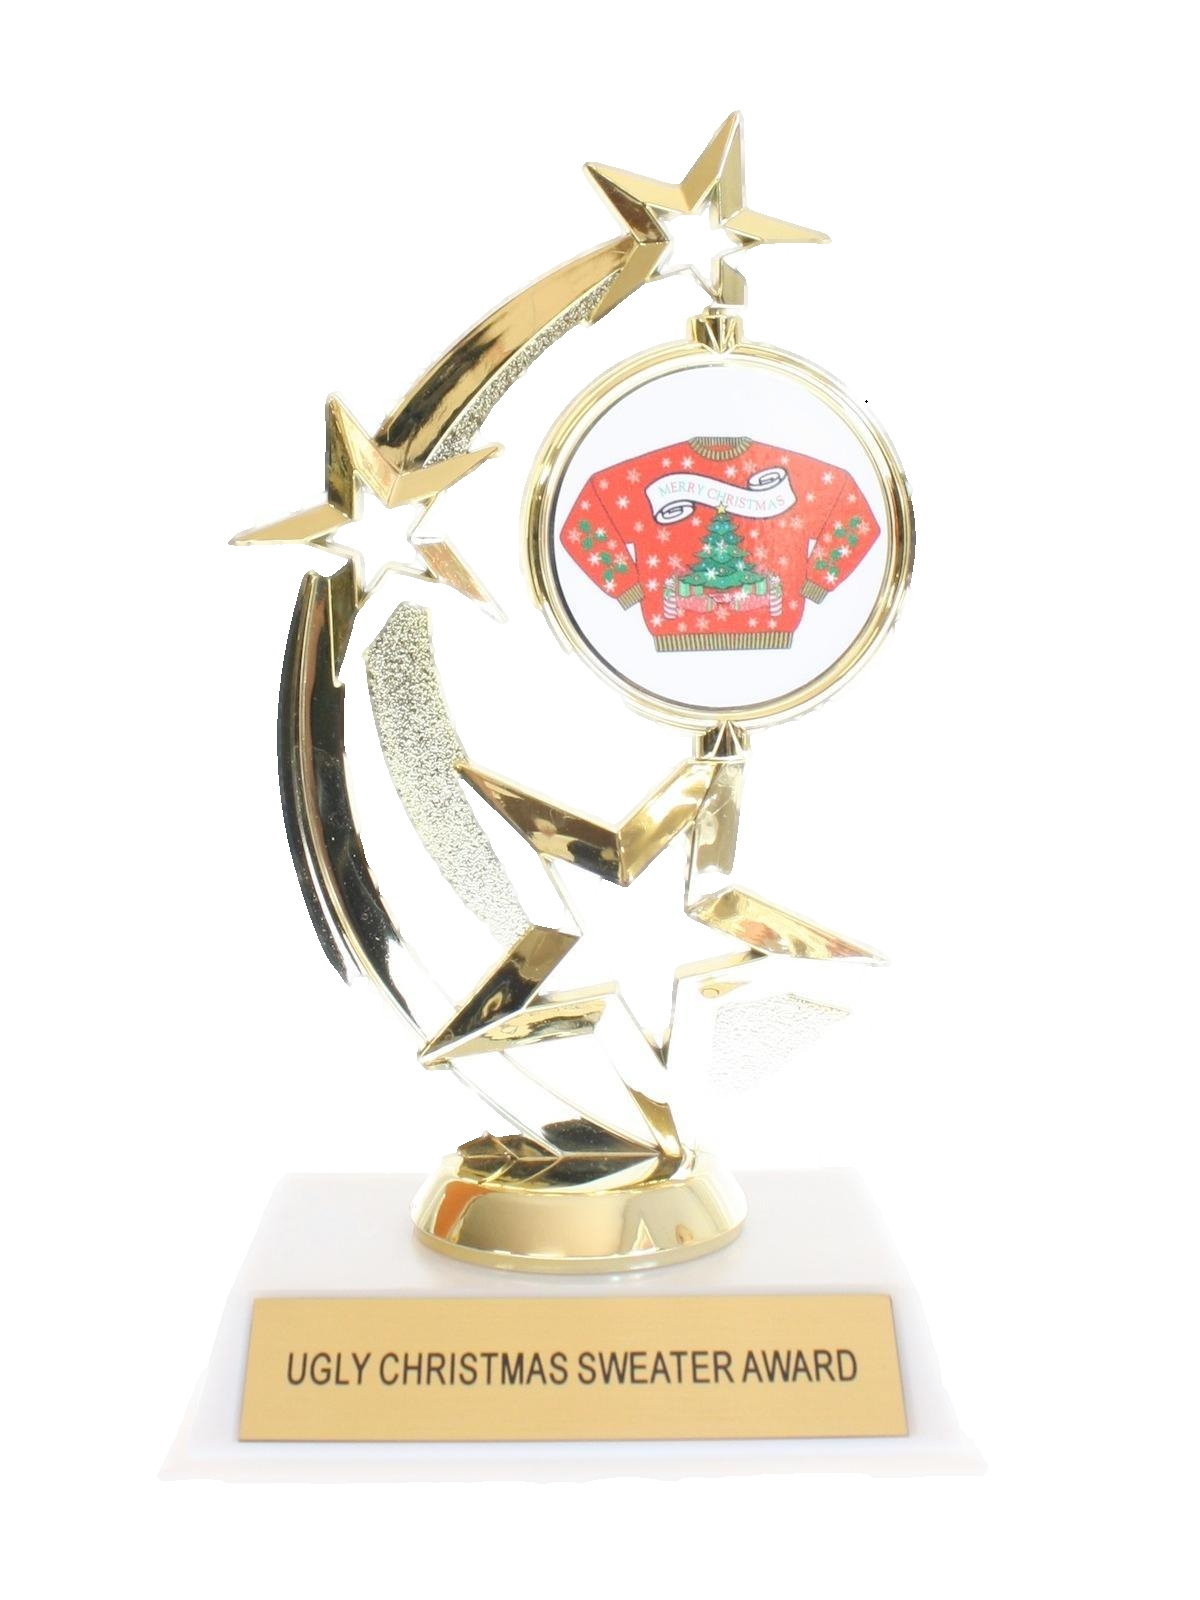 Accessories - Ugly Christmas Sweater Party Trophy Award: 90s -UGLY ...